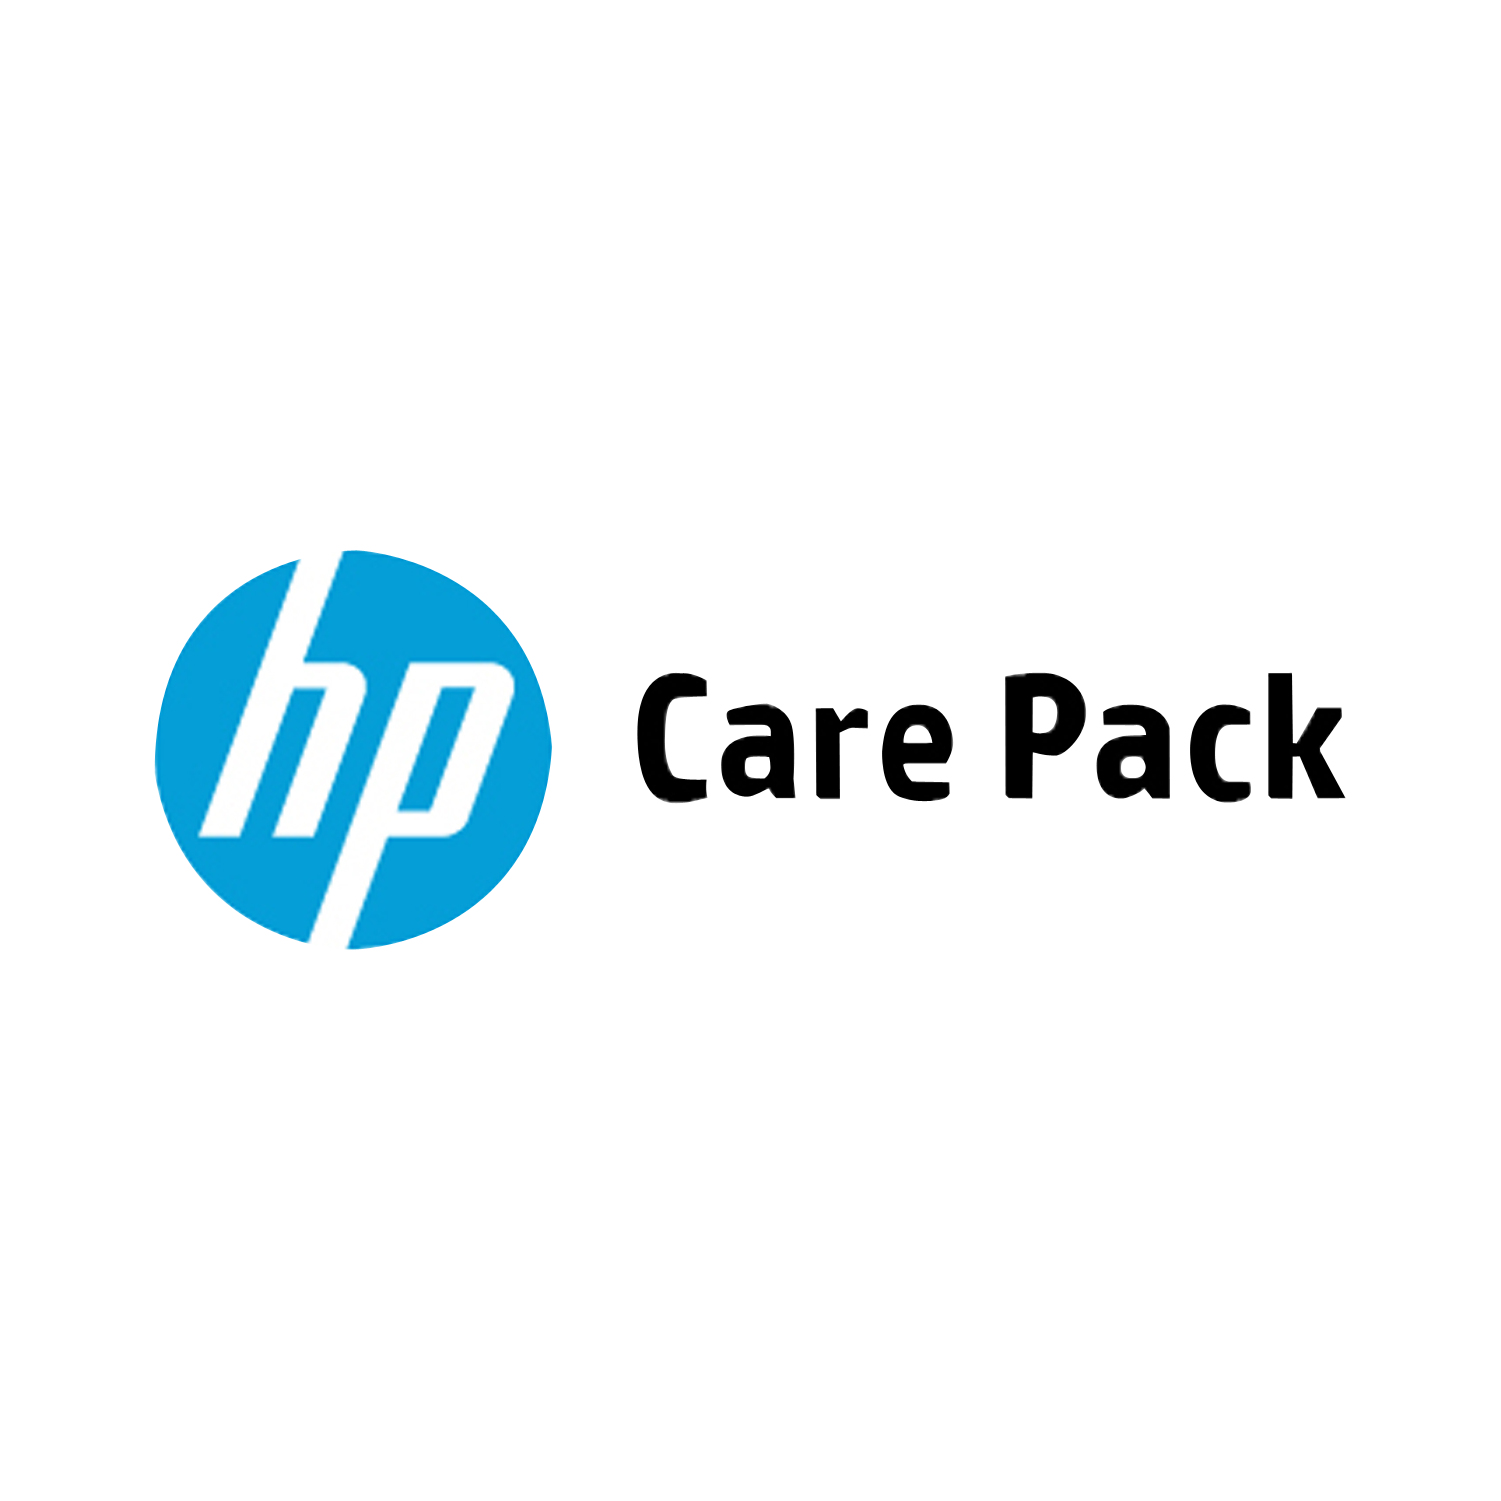 Electronic HP Care Pack Next Business Day Hardware Support - Extended Service Agreement - Parts And Labour - 5 Years - On-site - 9x5 - Response Time: NBD - For Color LaserJet Pro M452dn, M452 - C2000